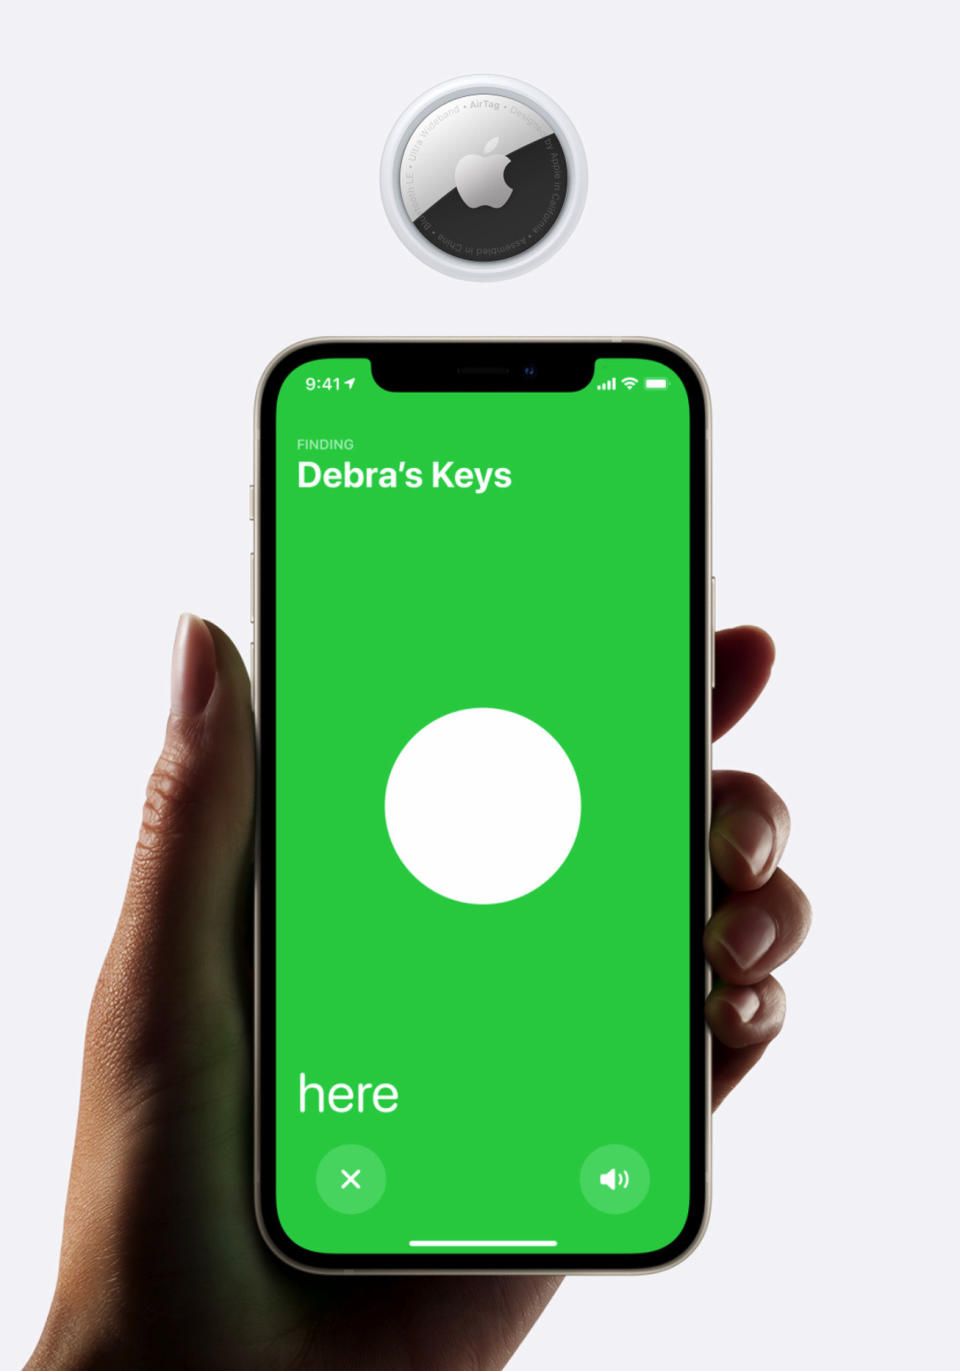 <p>The new Apple AirTag that works with Find My app.</p>